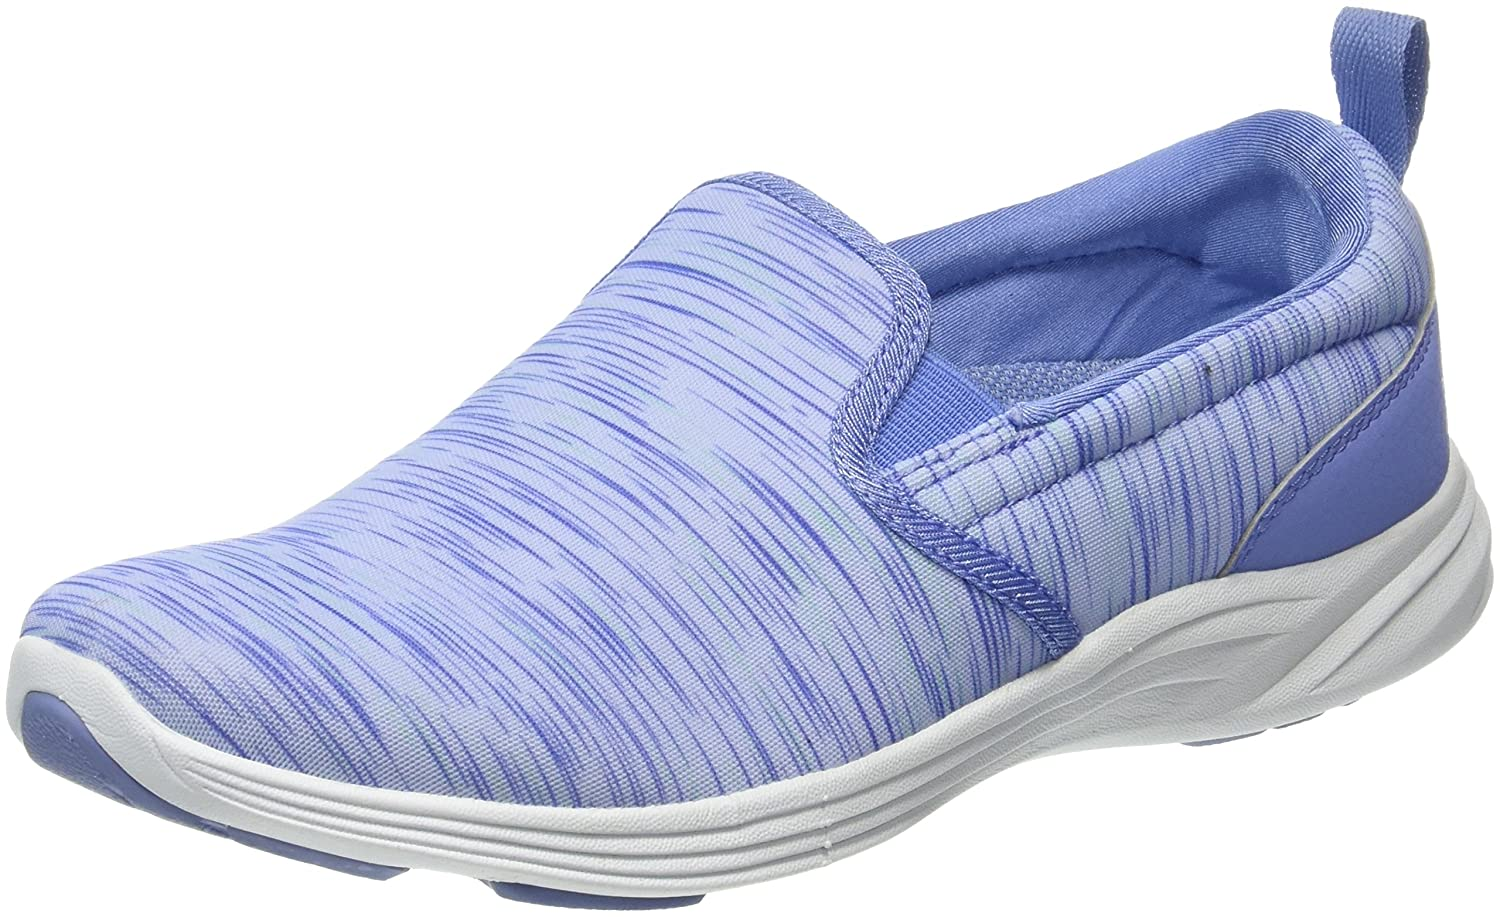 Vionic Women's Kea Wide Slip-On Sneakers in Light Blue B071K16JPH 6 C/D US